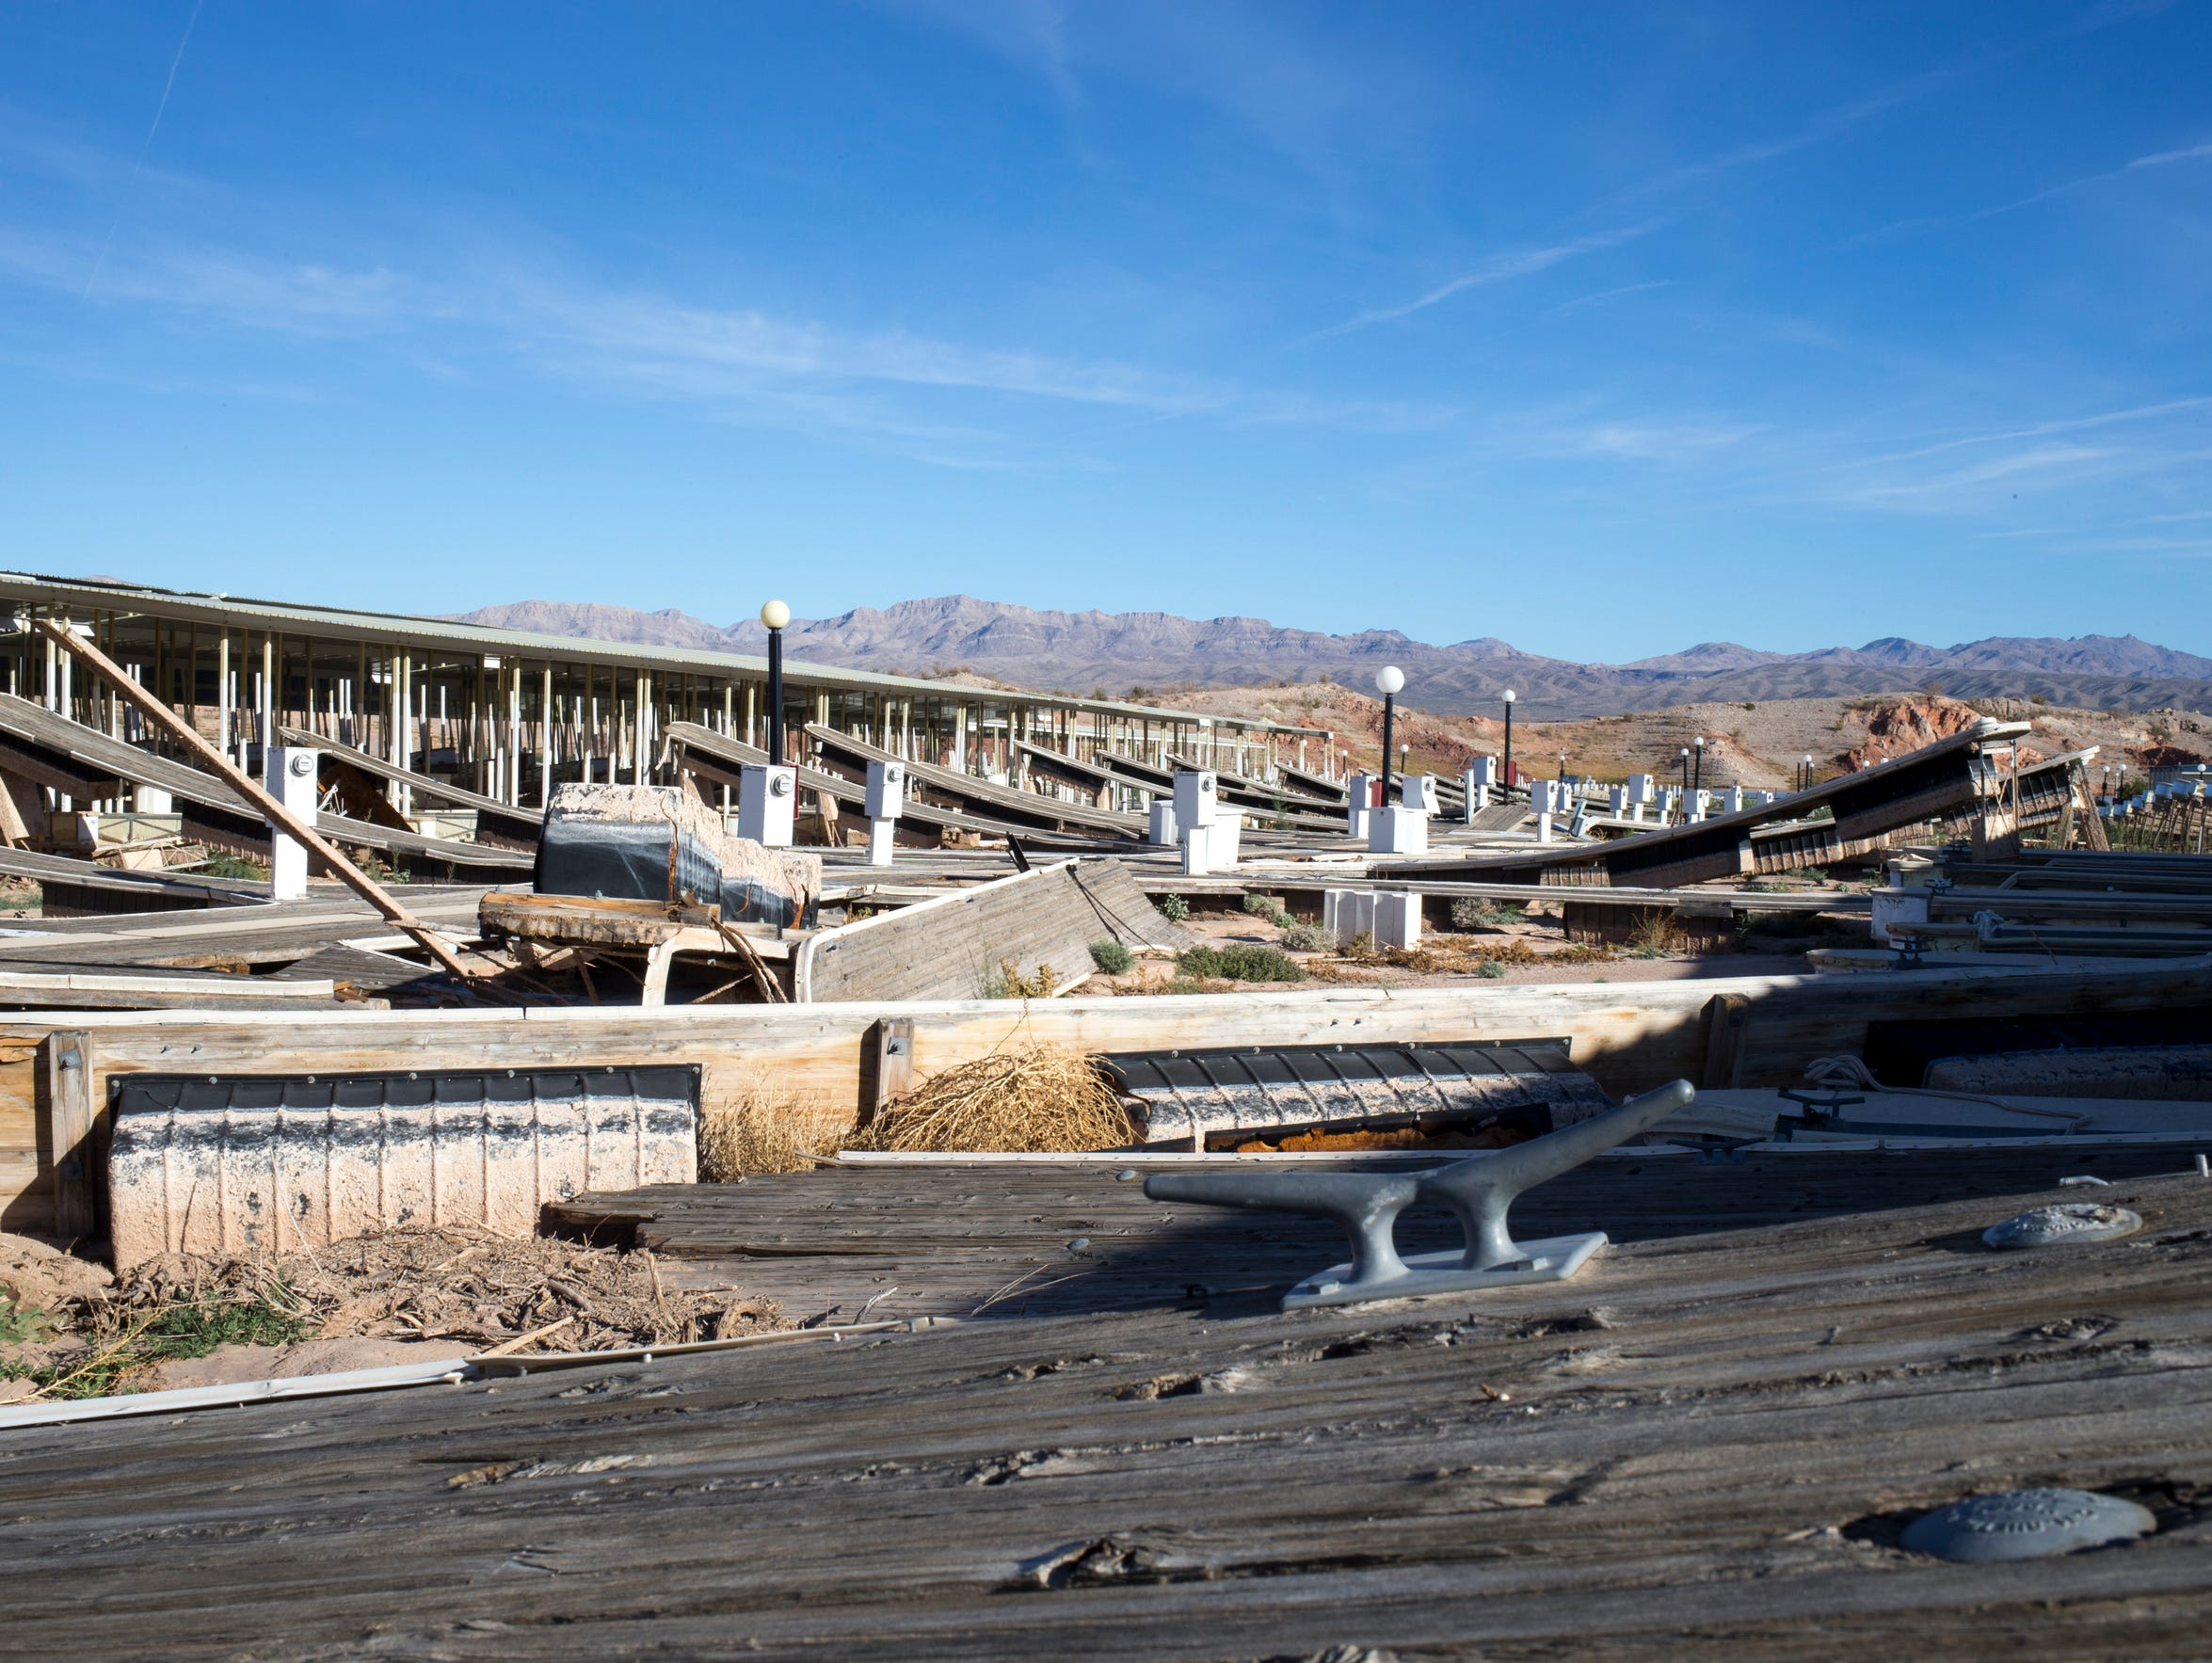 Historic low levels in Lake Mead left resort areas